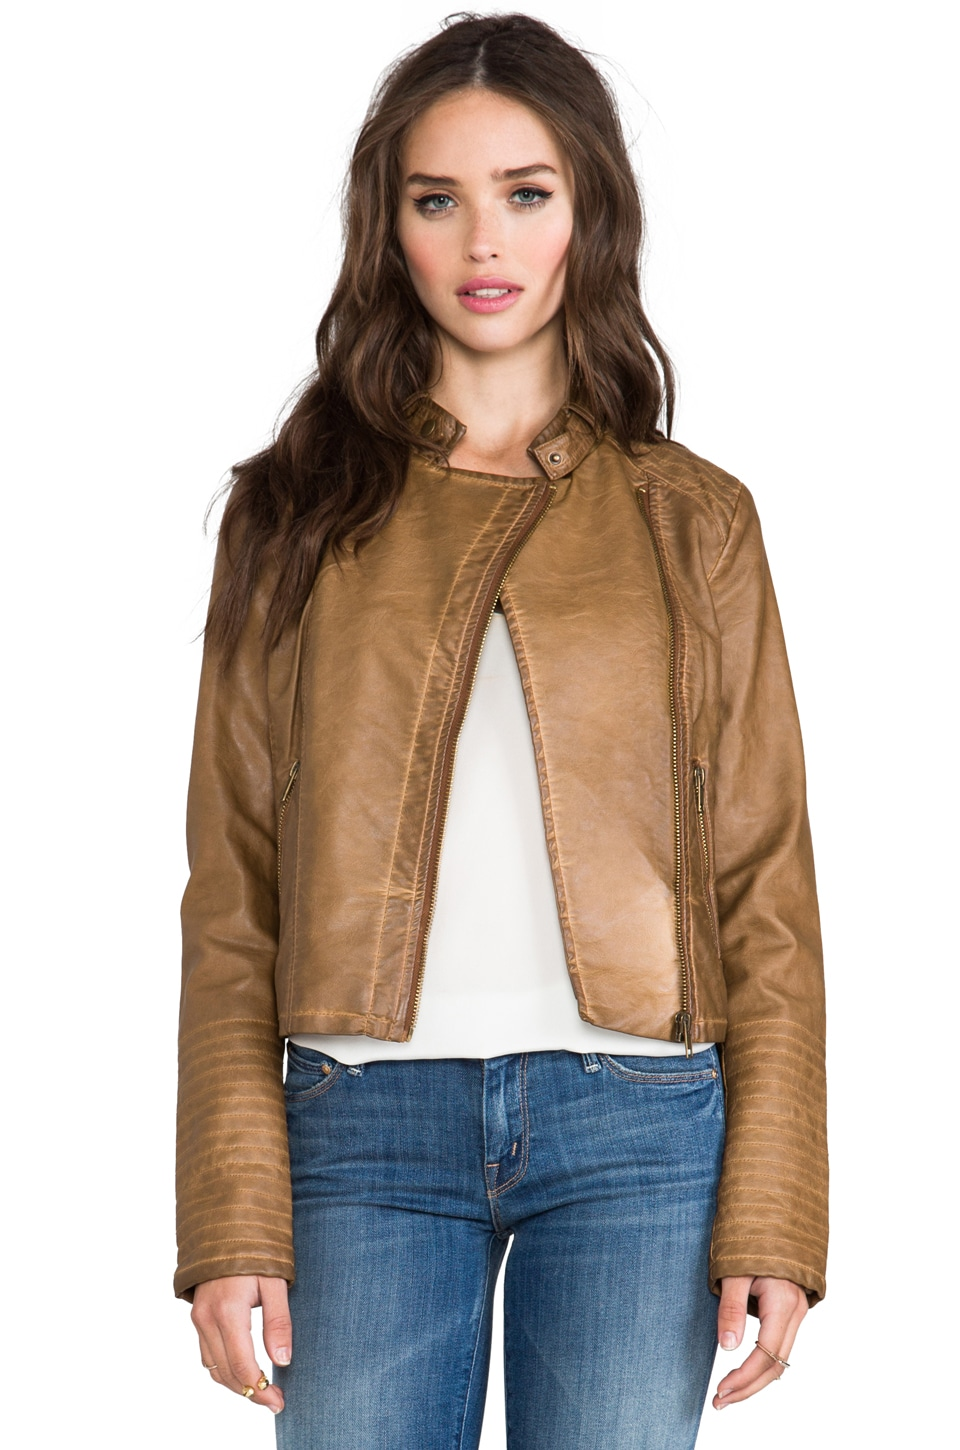 BB Dakota Stanley Garment Dye Faux Leather Moto Jacket in Light Brown